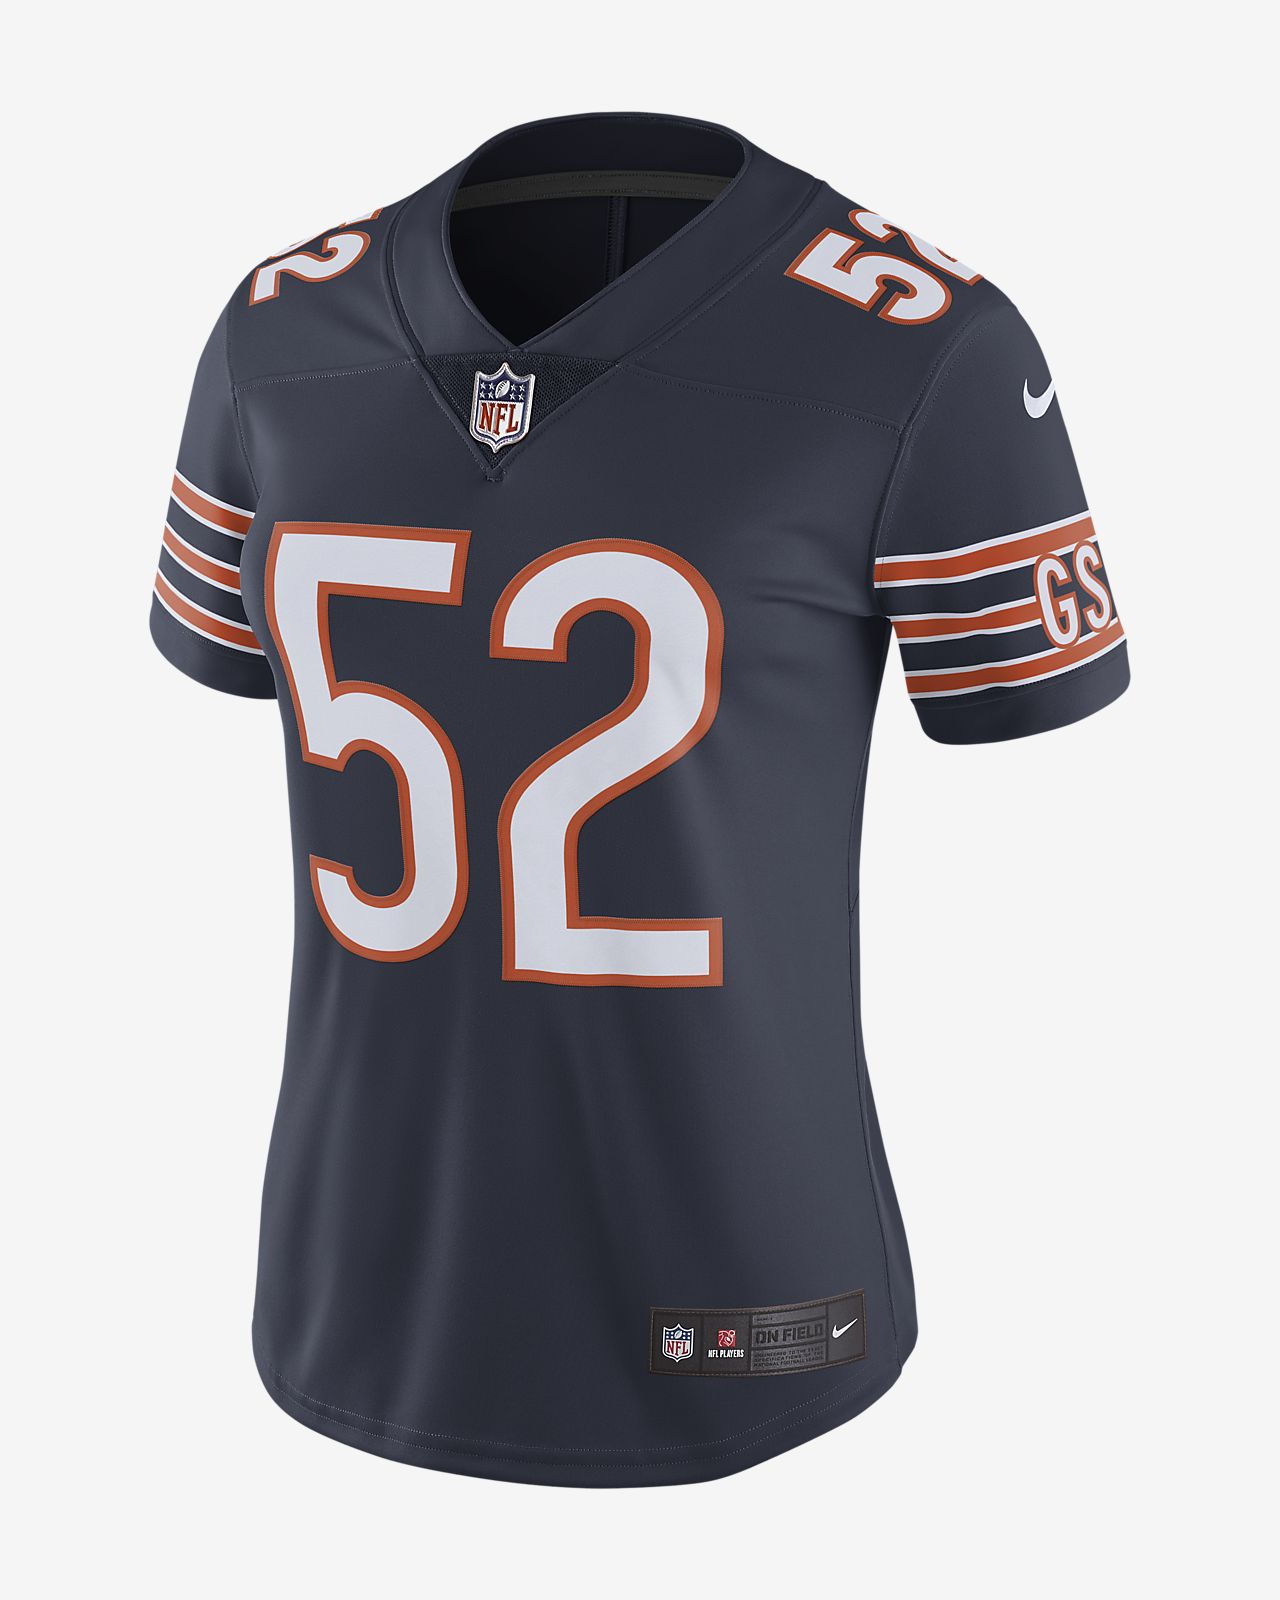 new style c3546 b6778 NFL Chicago Bears Limited (Khalil Mack) Women's Football Jersey